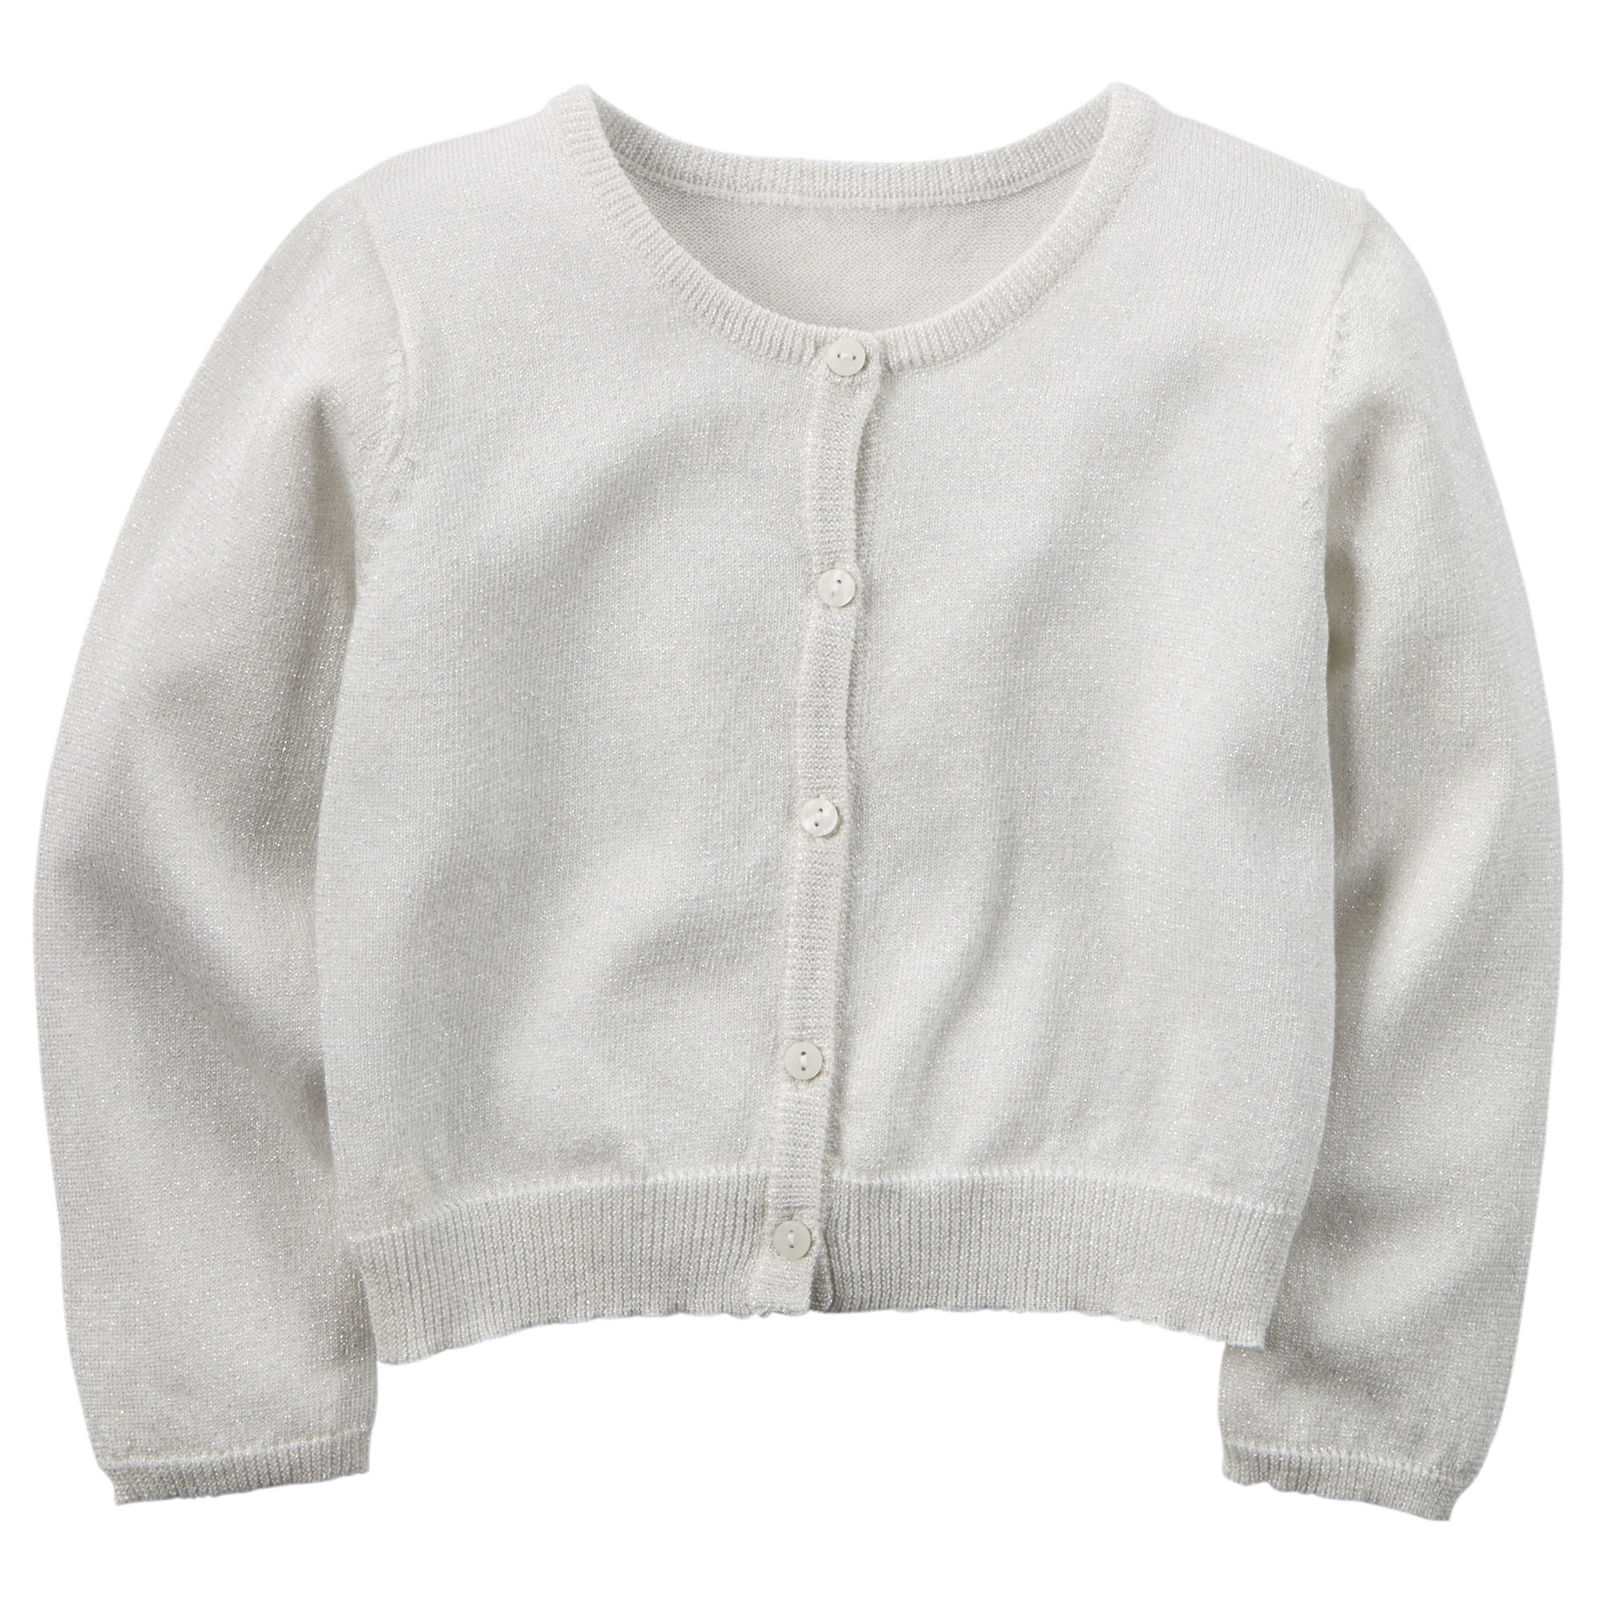 Carter's Little Girls' Sparkle Cardigan - Gray